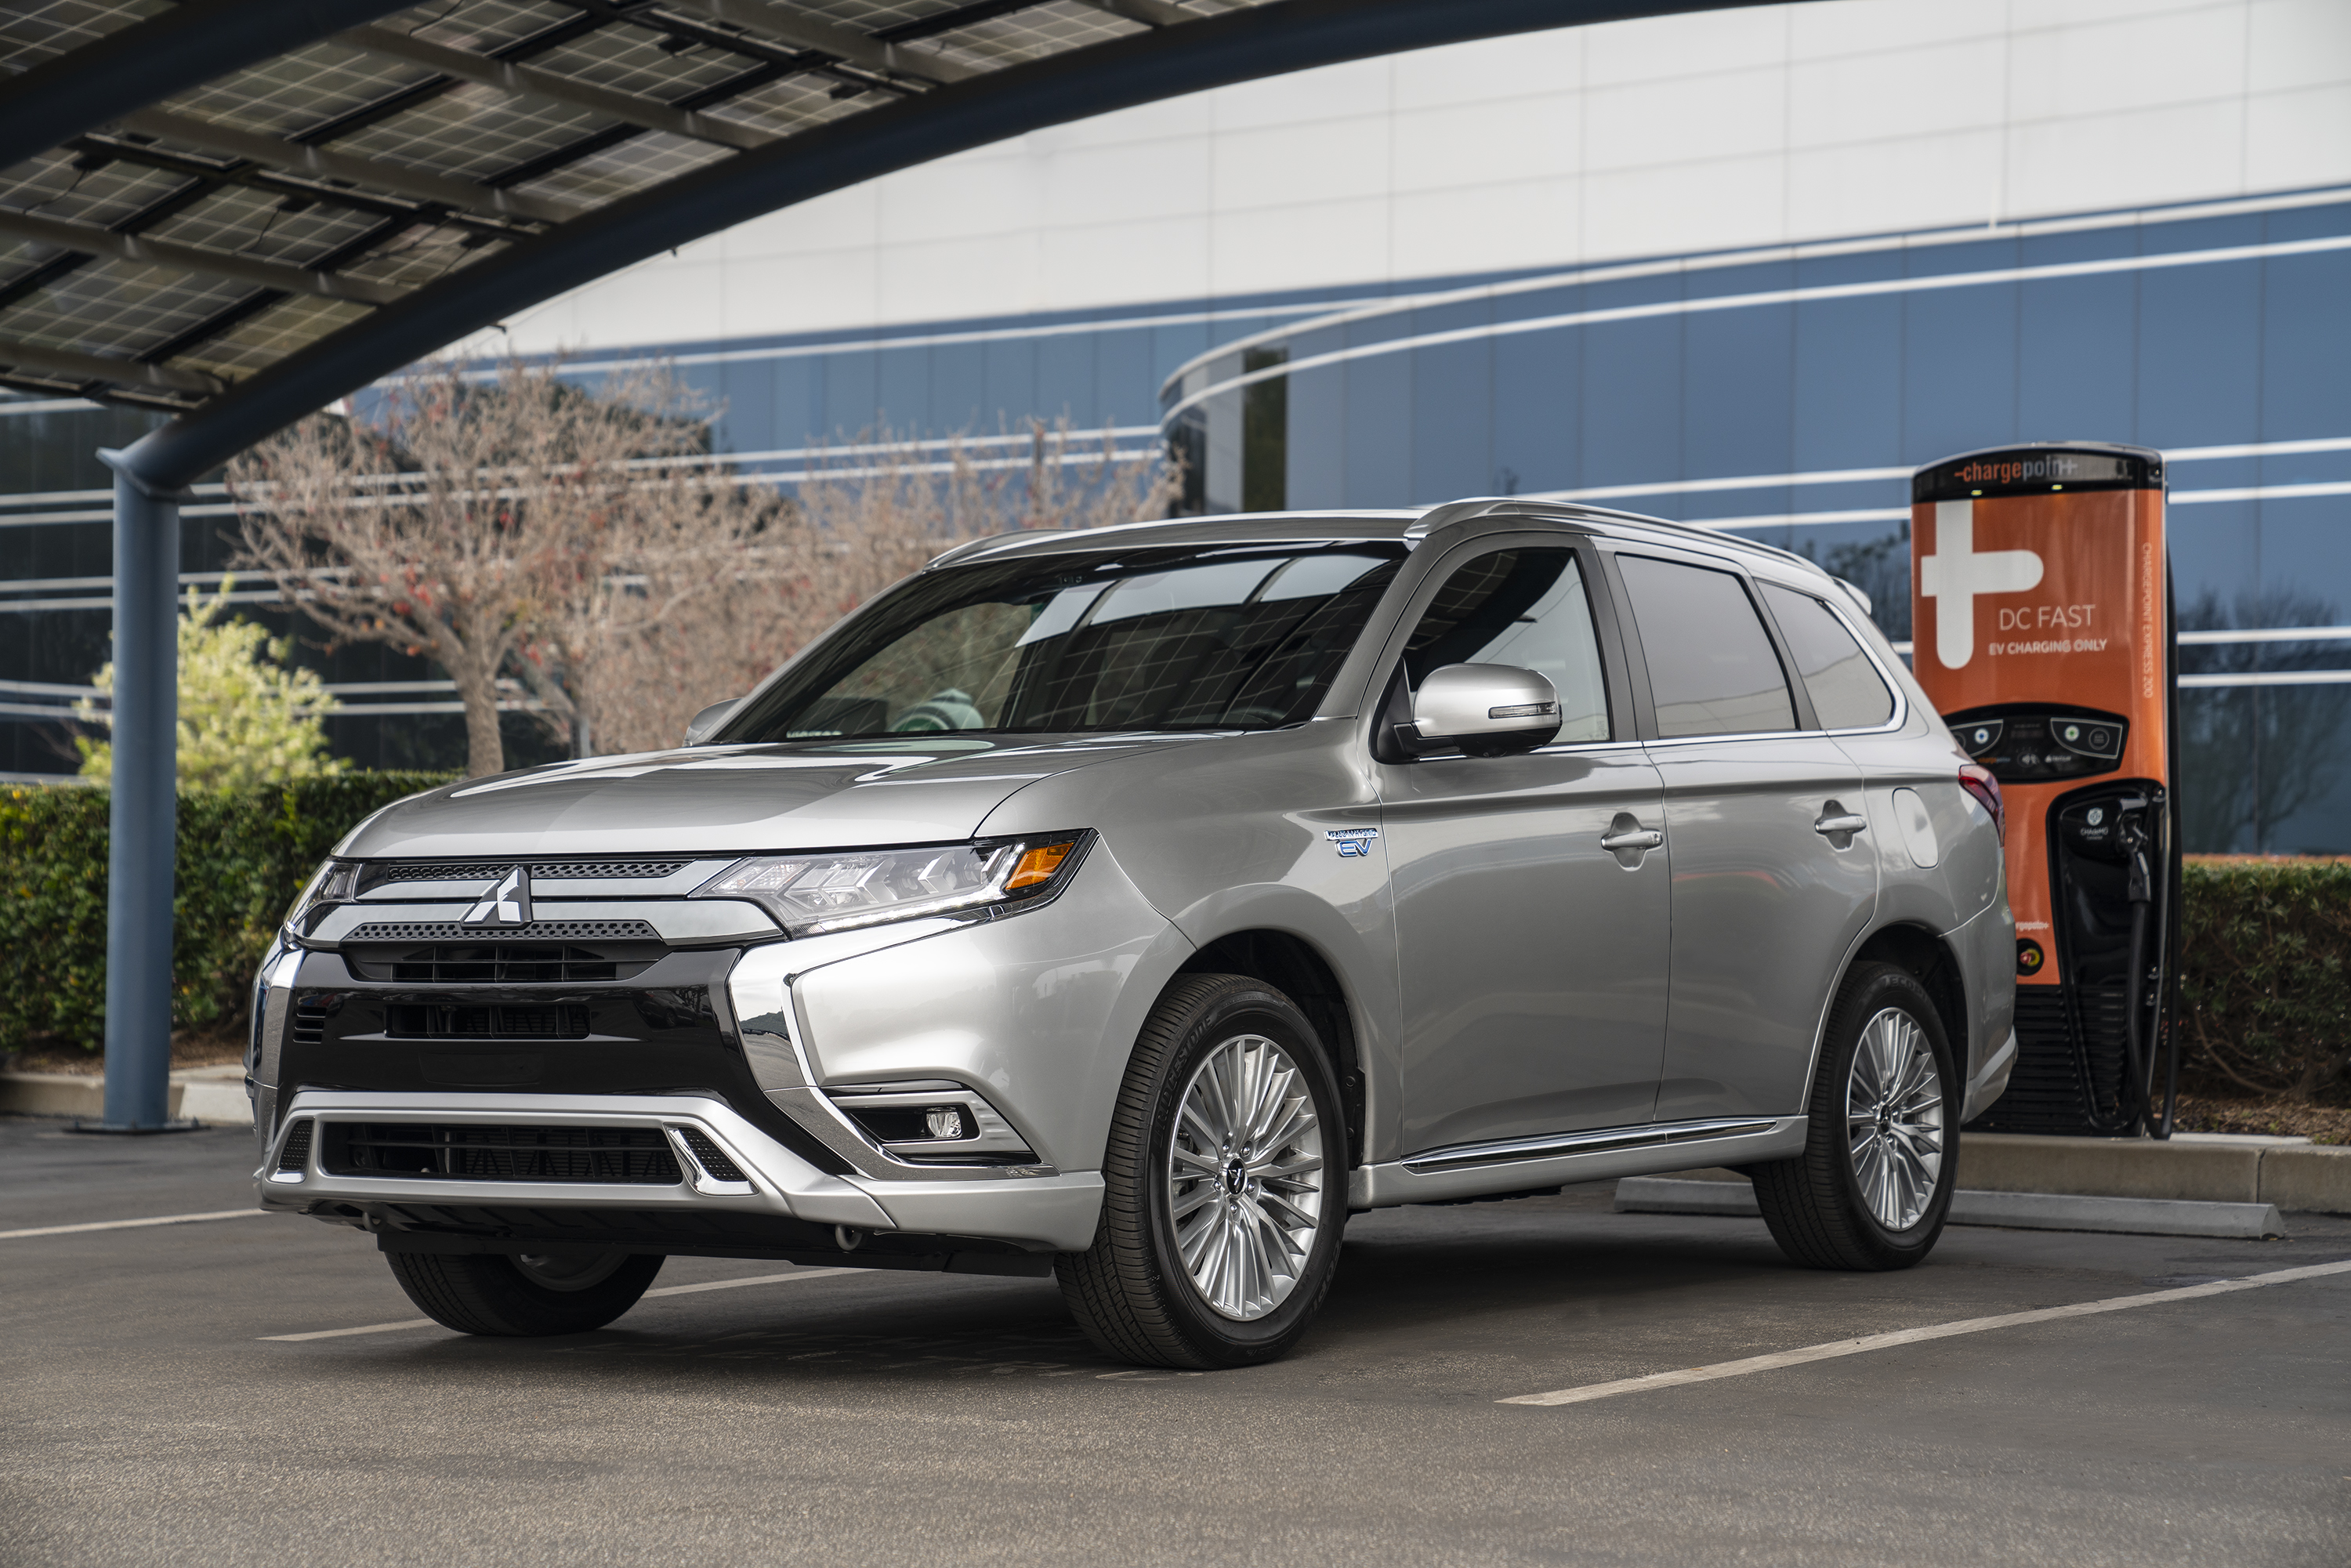 Nhtsa Gives 2020 Mitsubishi Outlander Phev A High Safety